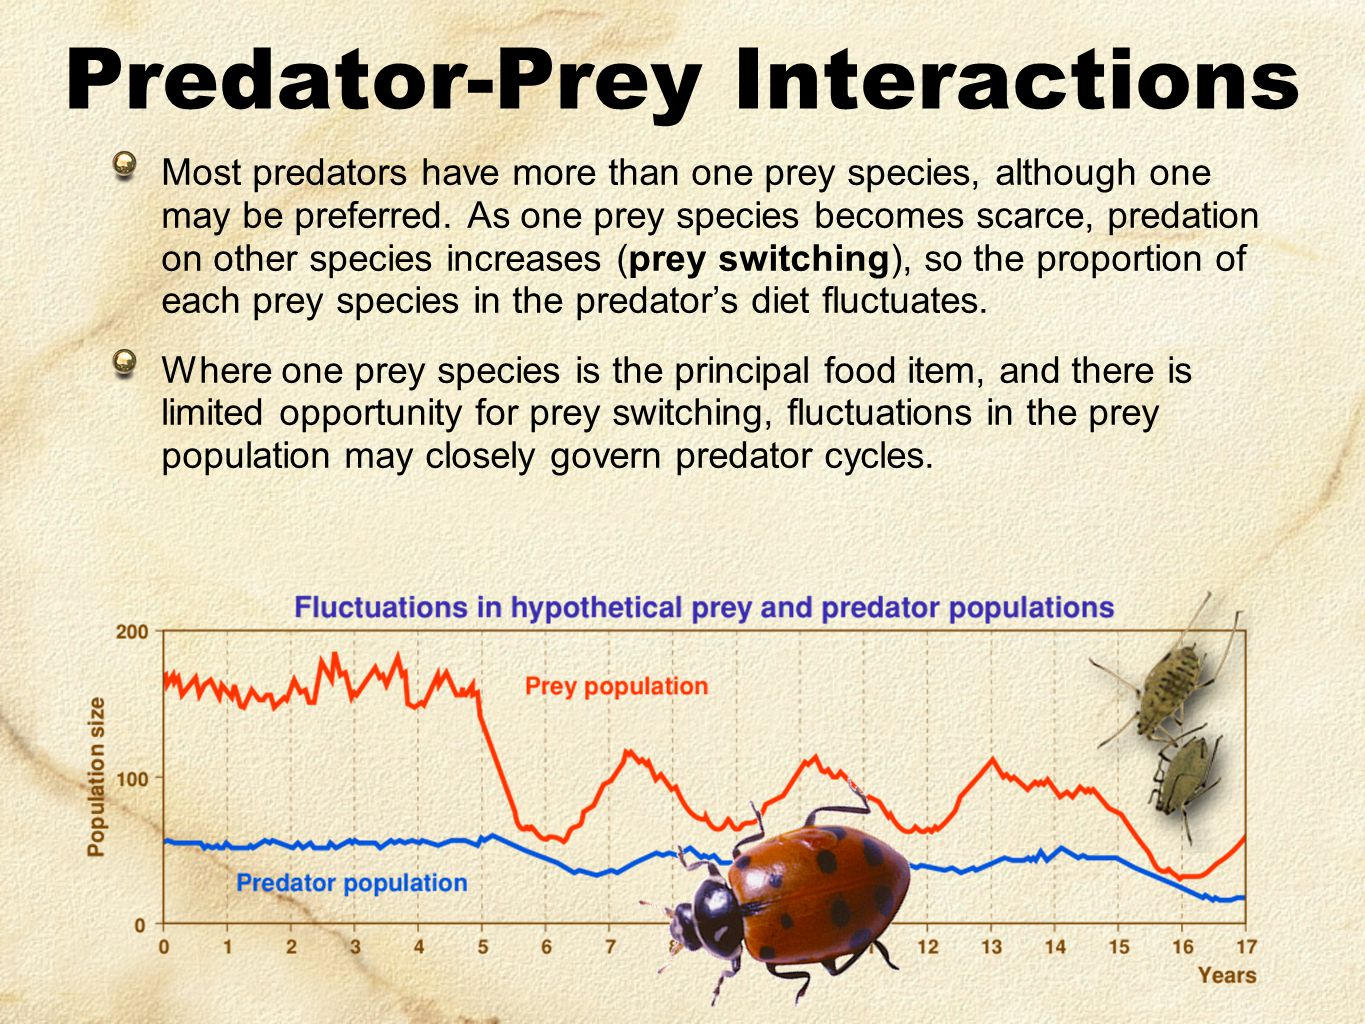 Most predators have more than one prey species, although one may be preferred. As one prey species becomes scarce, predation on other species increase